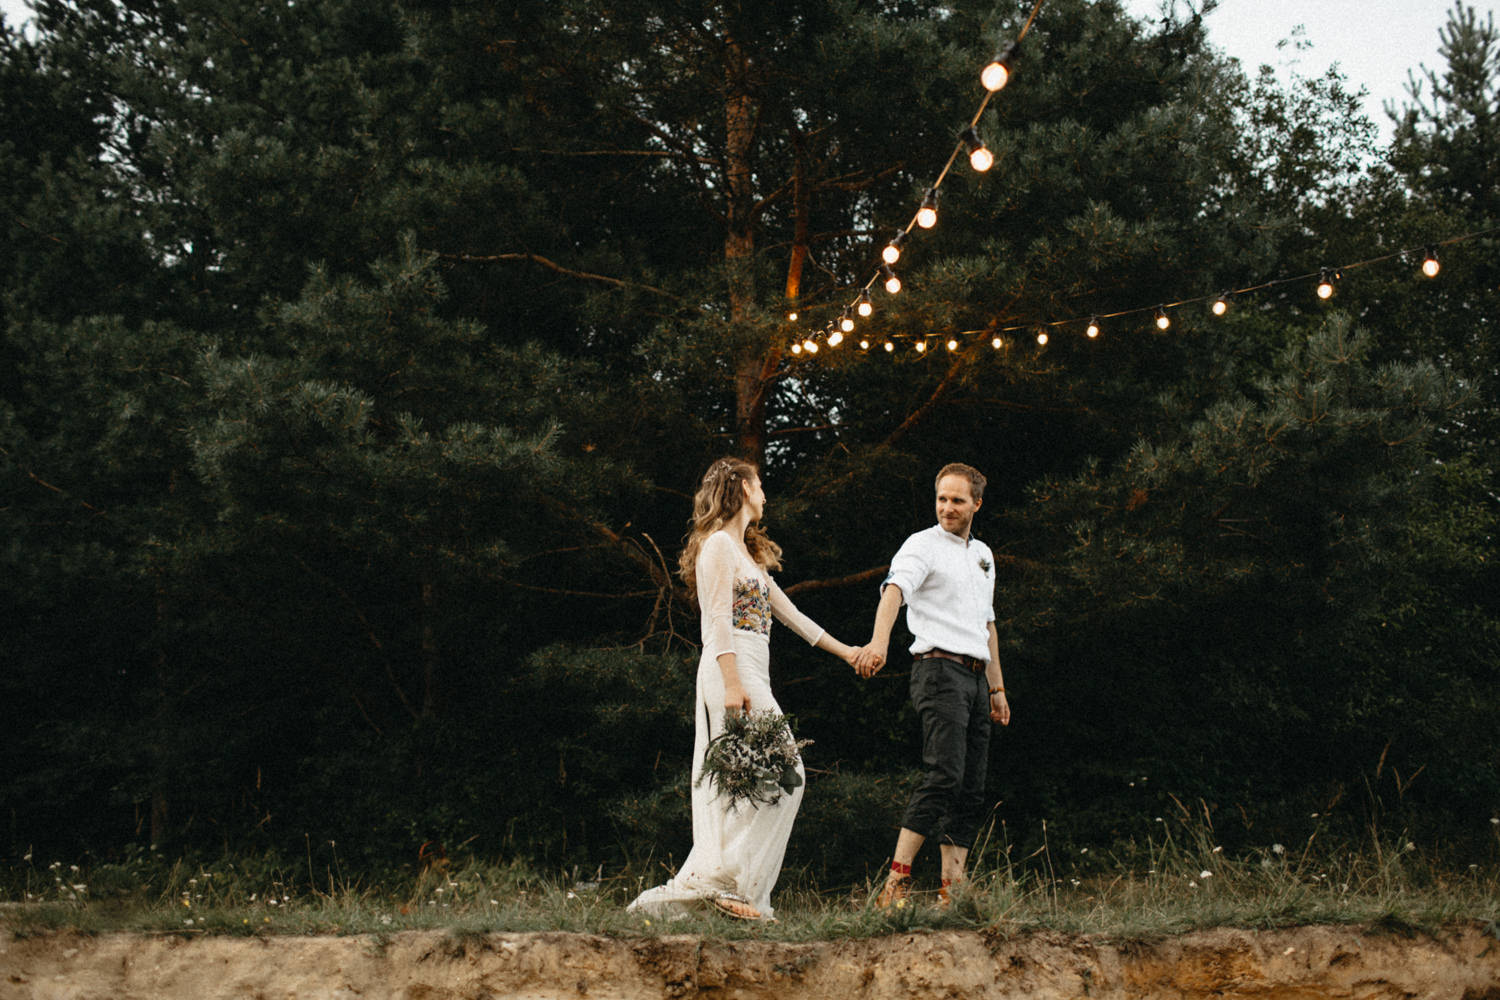 hipster wedding photography - bride and groom